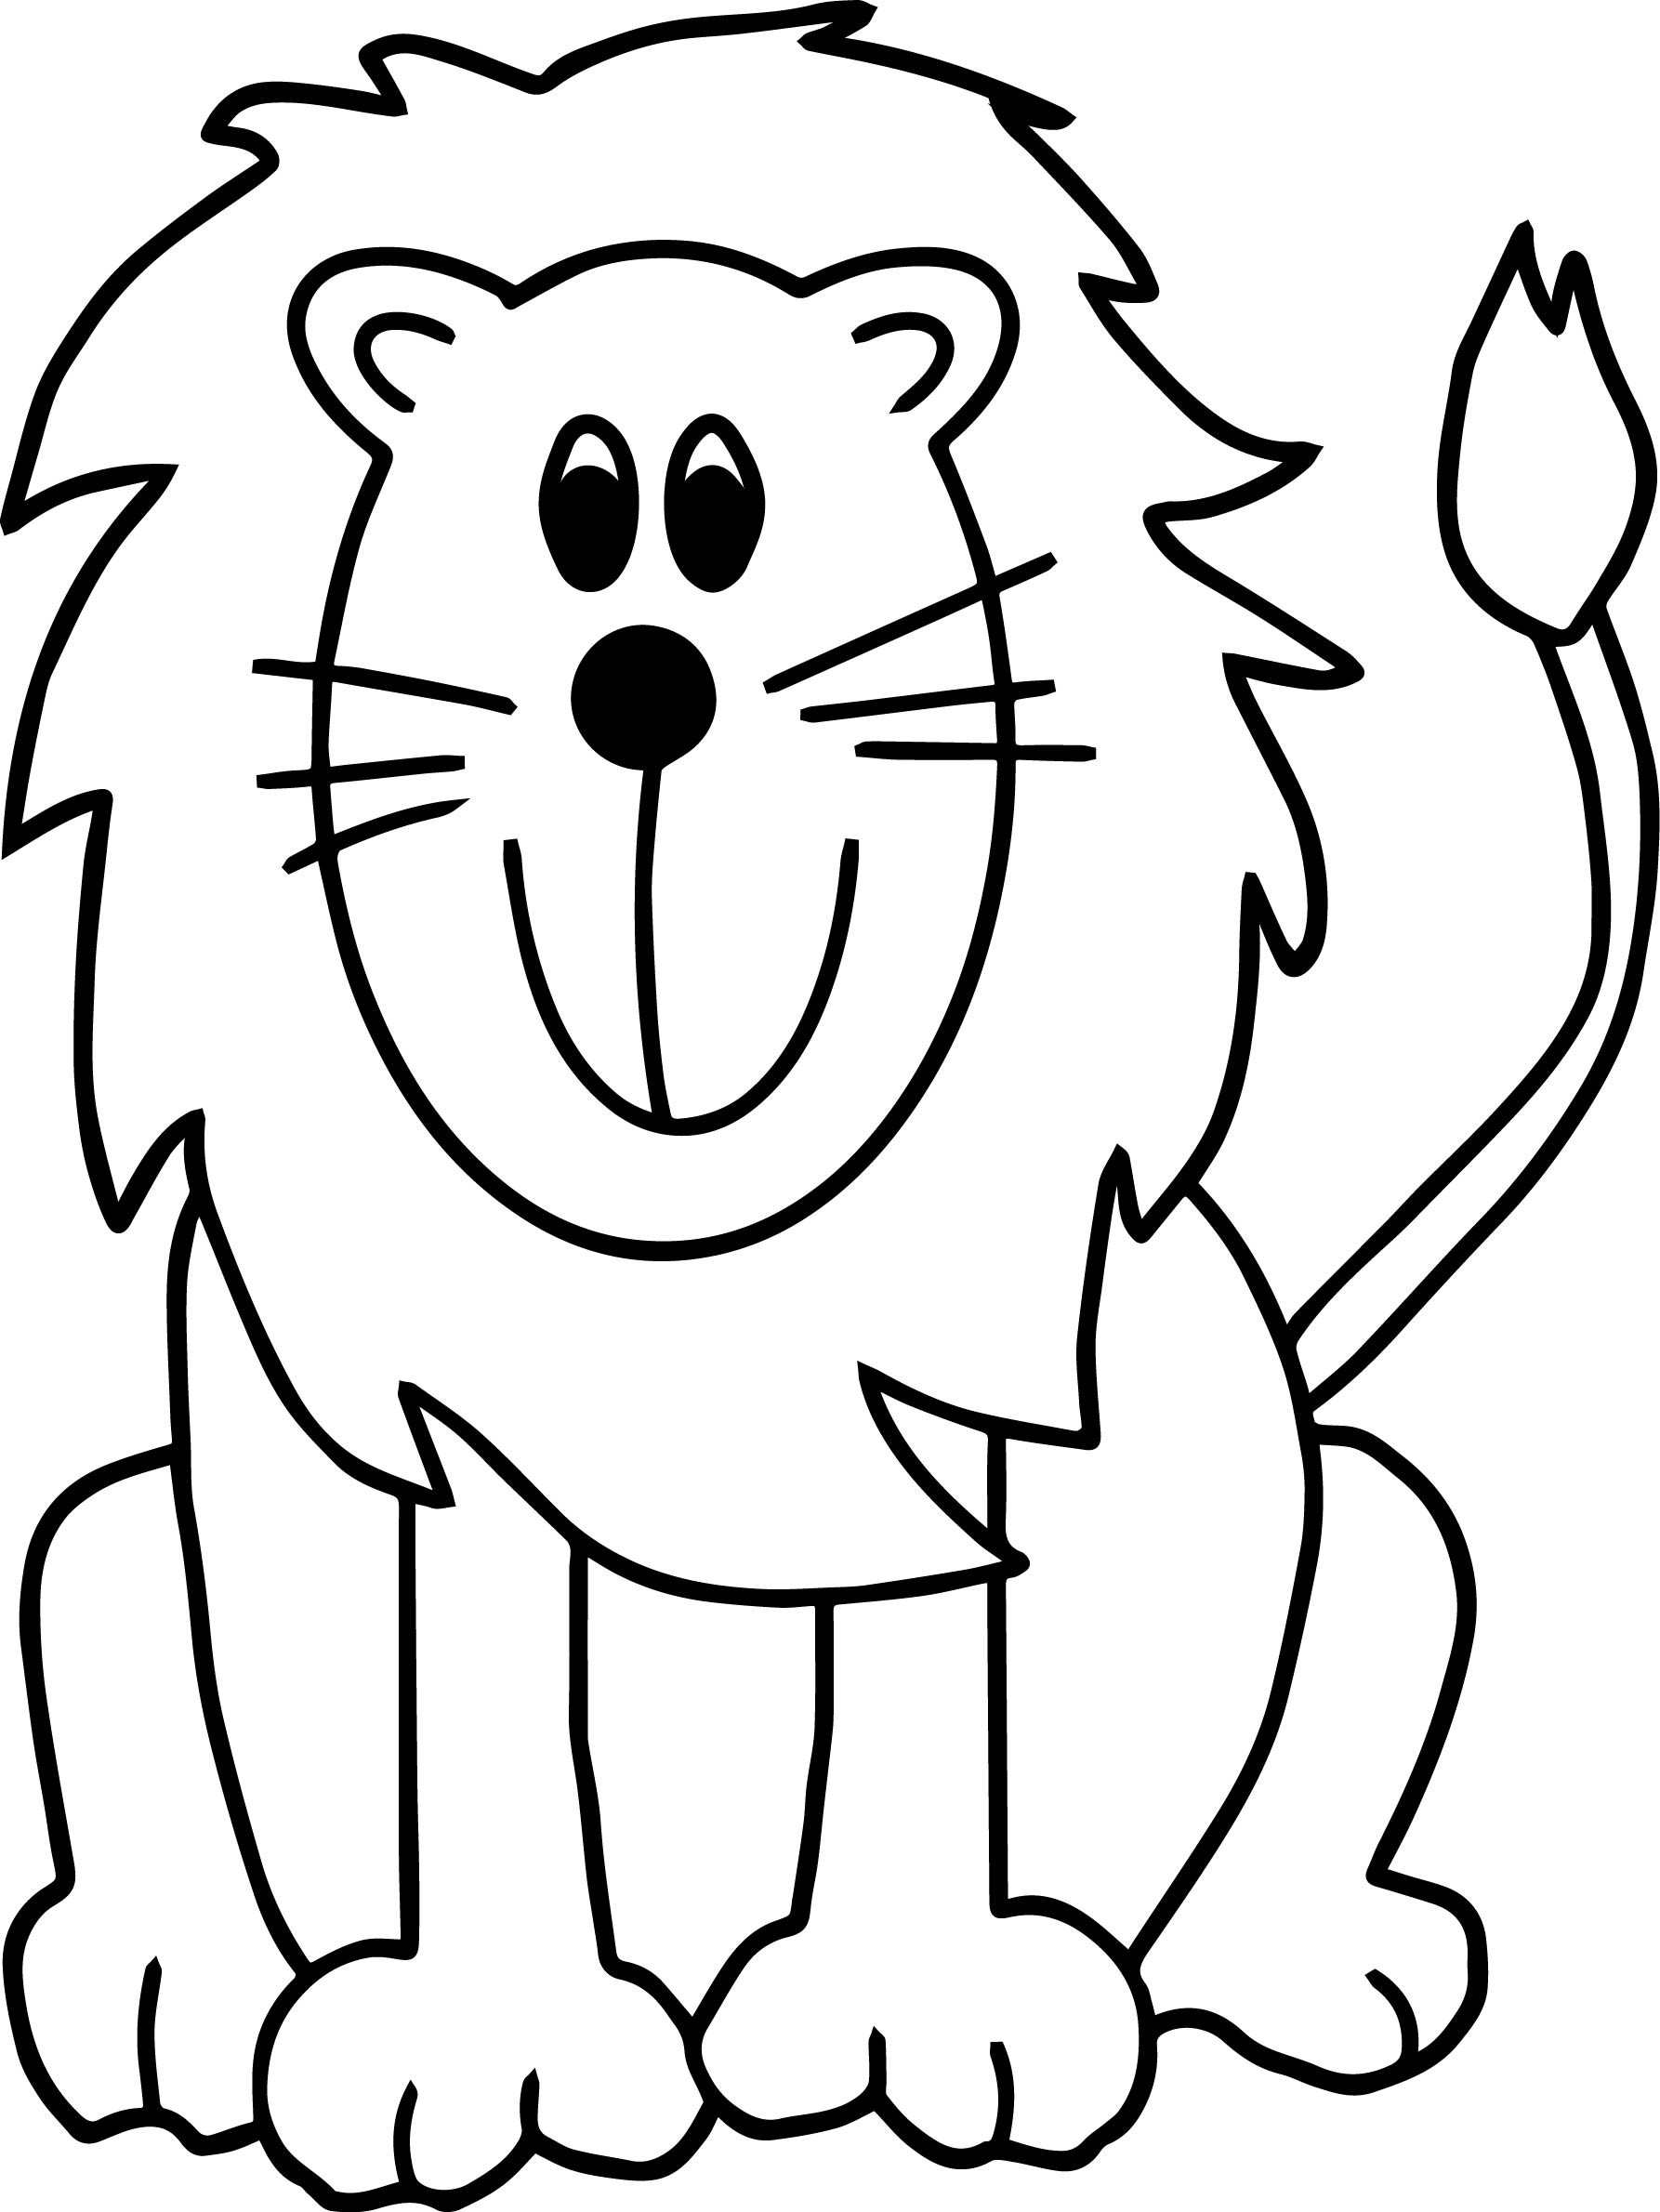 zoo animals coloring pictures zoo animal coloring pages for preschool at getcolorings zoo animals coloring pictures